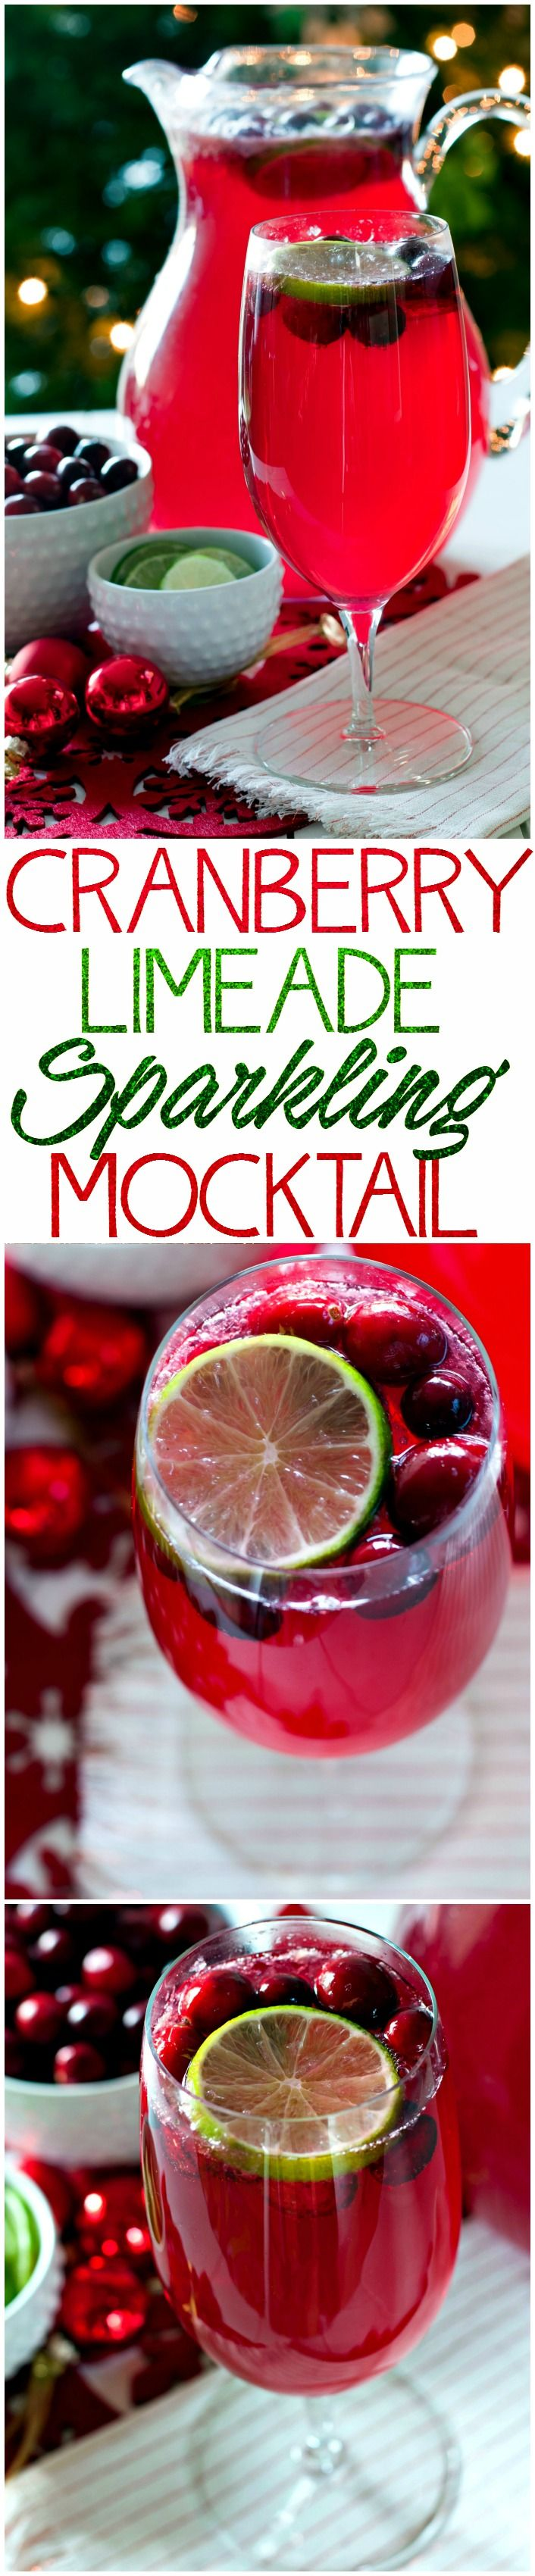 Make this Cranberry Limeade Sparkling Mocktail recipe for your next holiday party. It's to perfect festive mocktail for Christmas and New Year's! #CelebrateThis, #IC [ad]